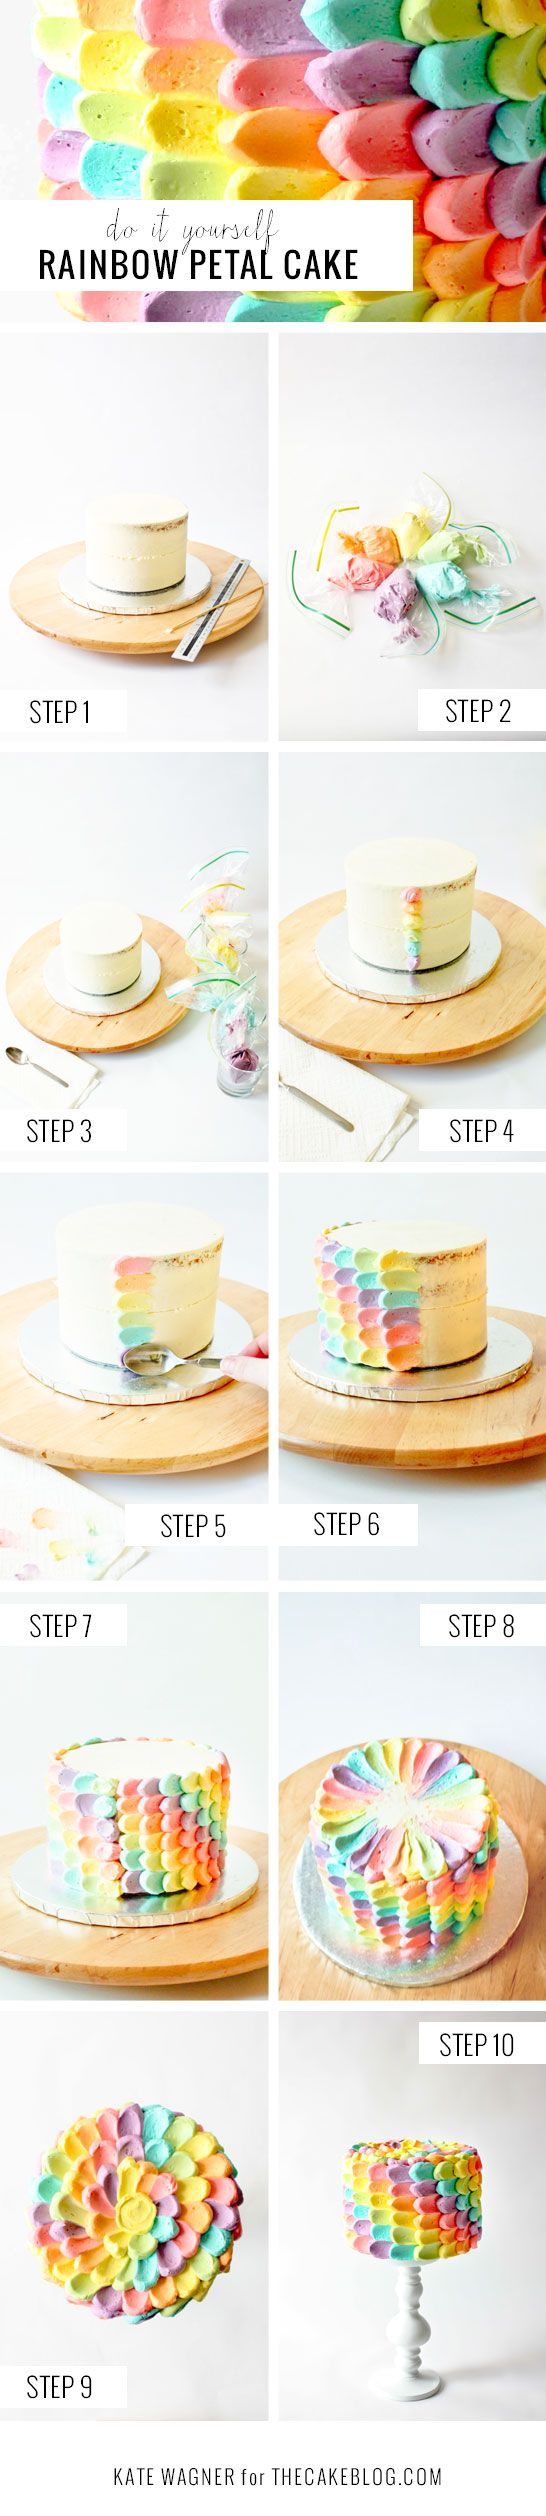 OMG DIY Petal Cake, so beautiful!! - Torta de pétalos de colores, hermosa para un cumple *_* ¦¦¦ Maybe Sara's?